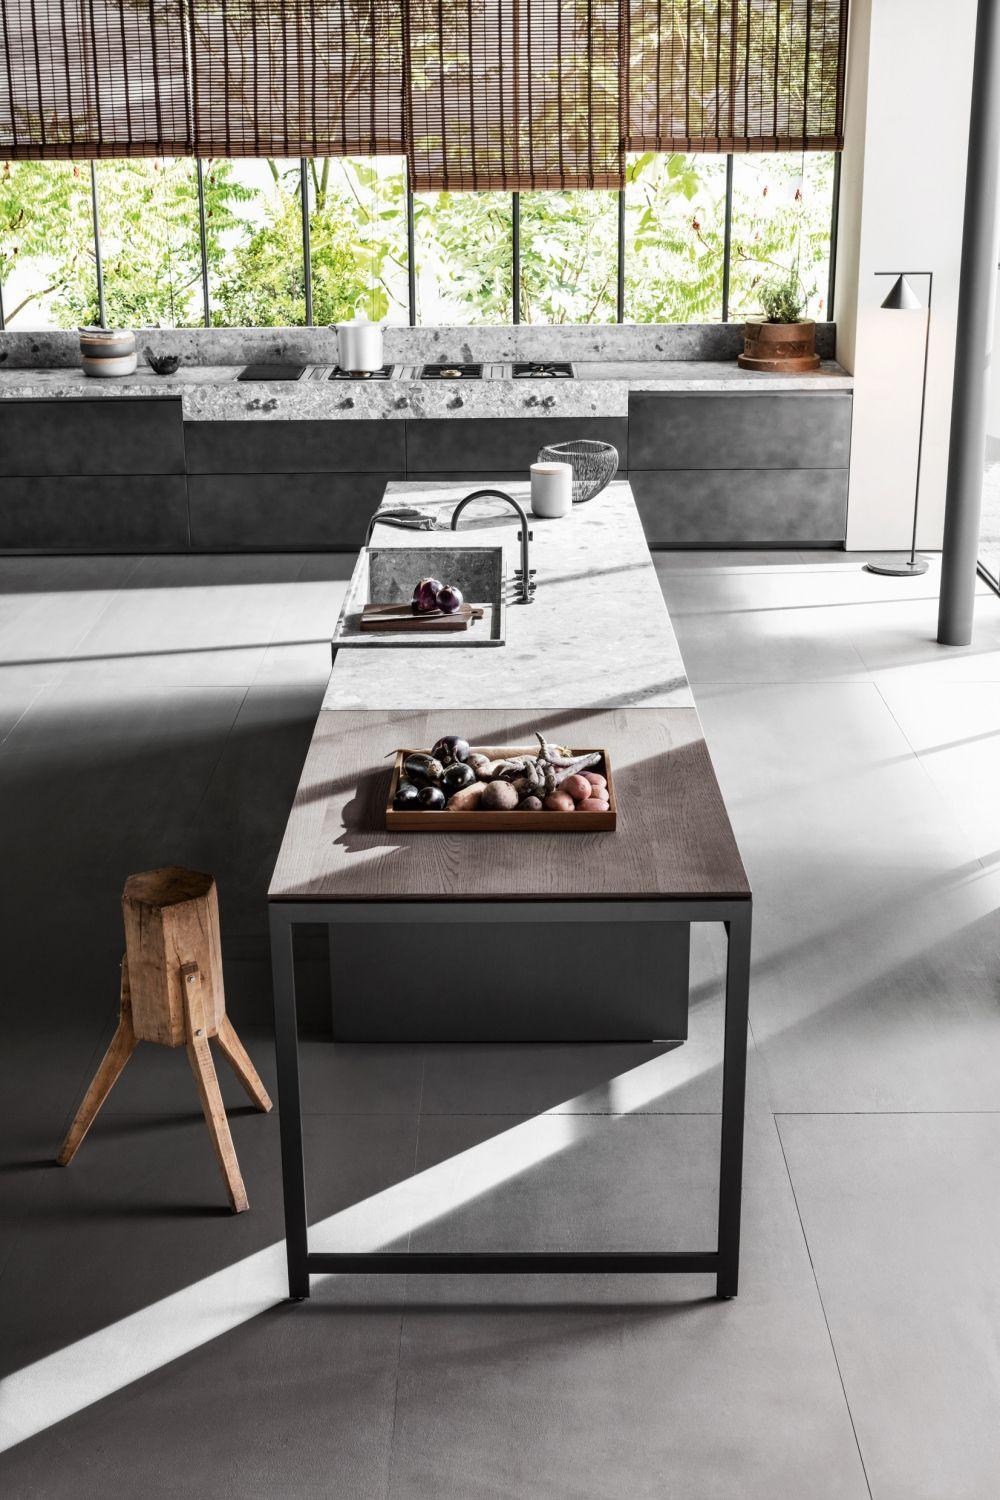 Dada Vvd Kitchen Designed By Vincent Van Duysen Pull Out Trays  # Muebles Y Cocinas Daxa